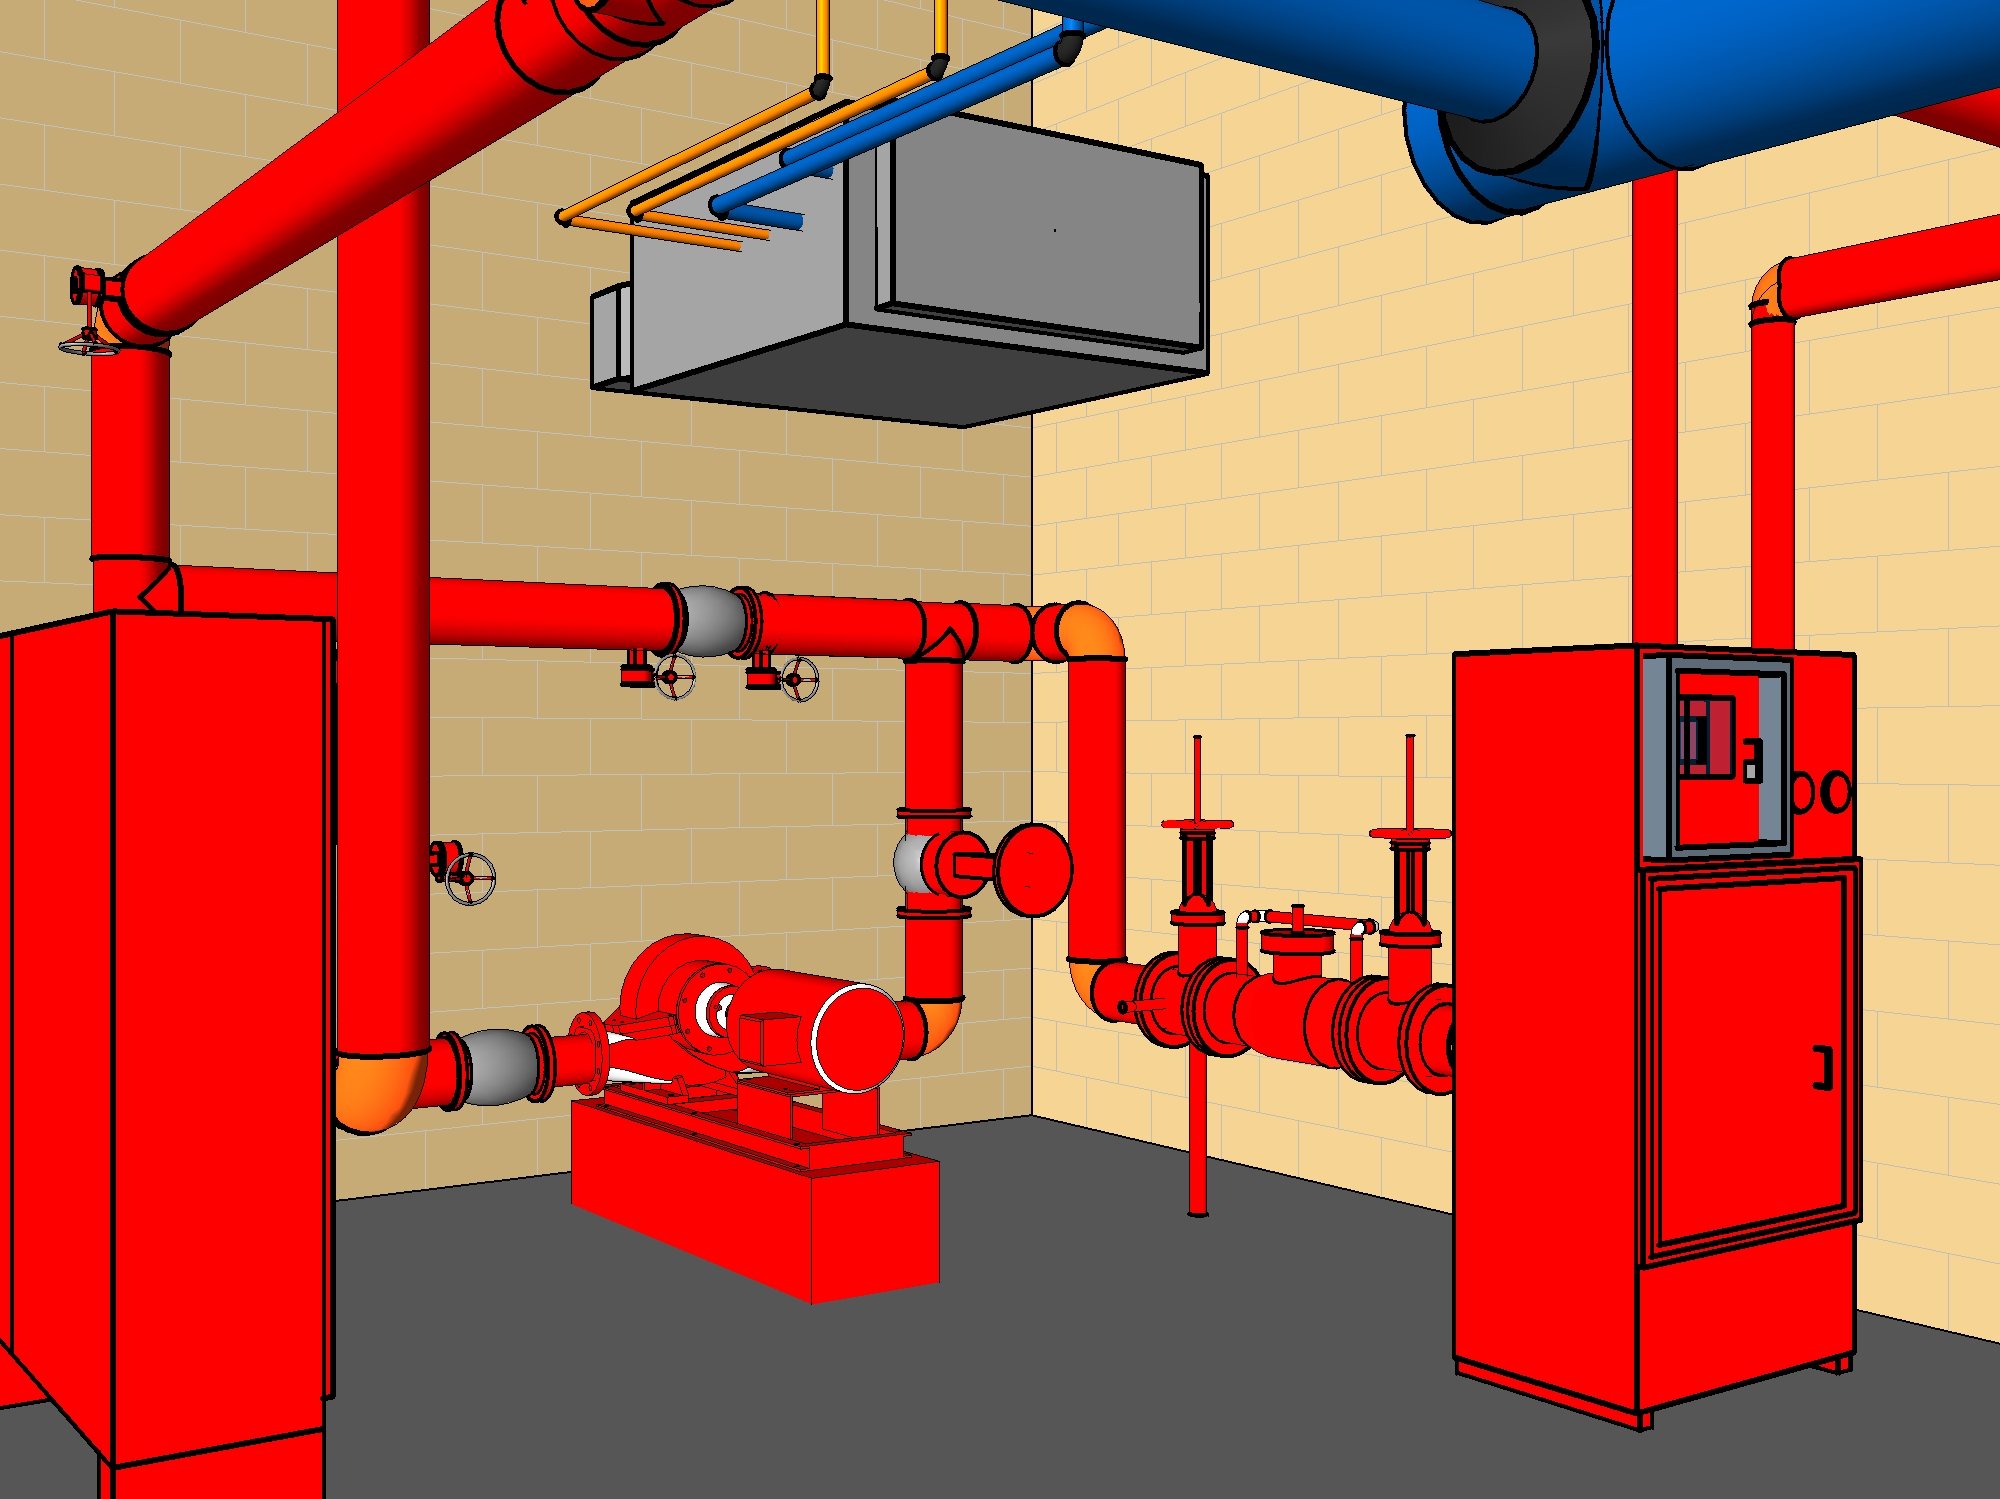 The above image is an example of a fire sprinkler CAD concept.